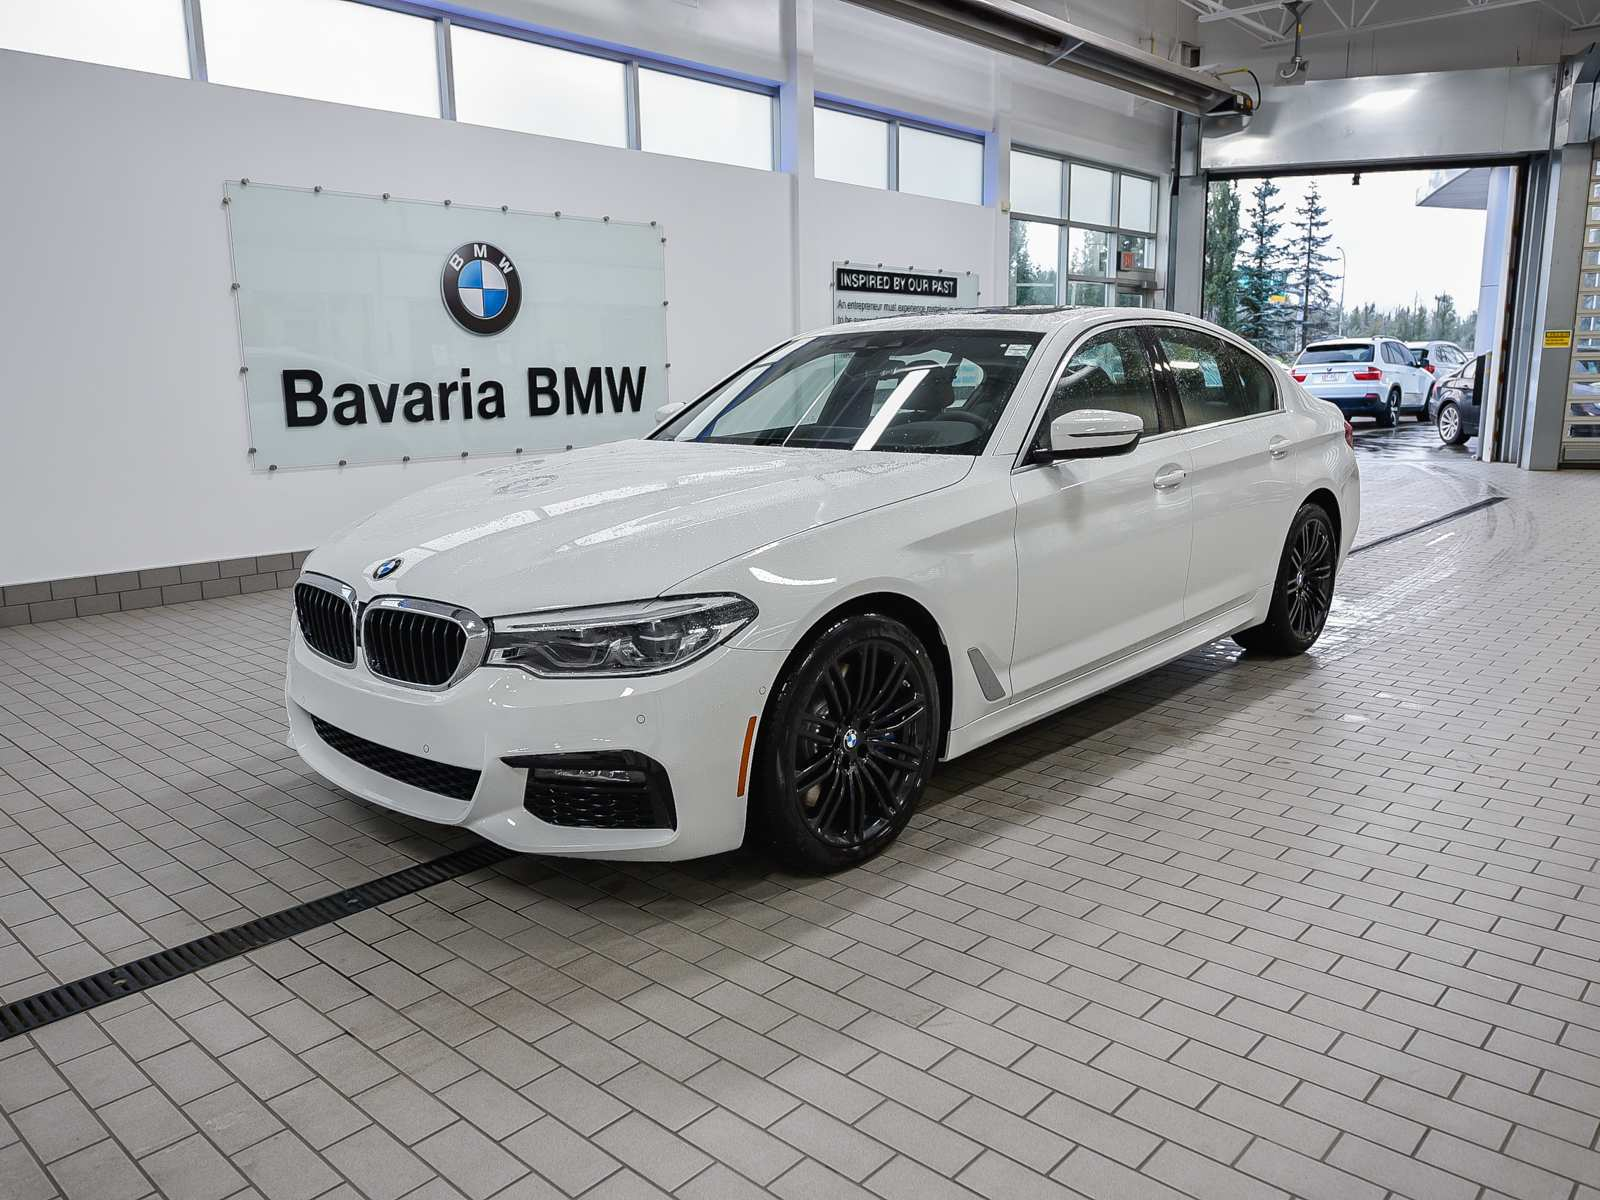 96 New 2019 Bmw 540I Exterior with 2019 Bmw 540I